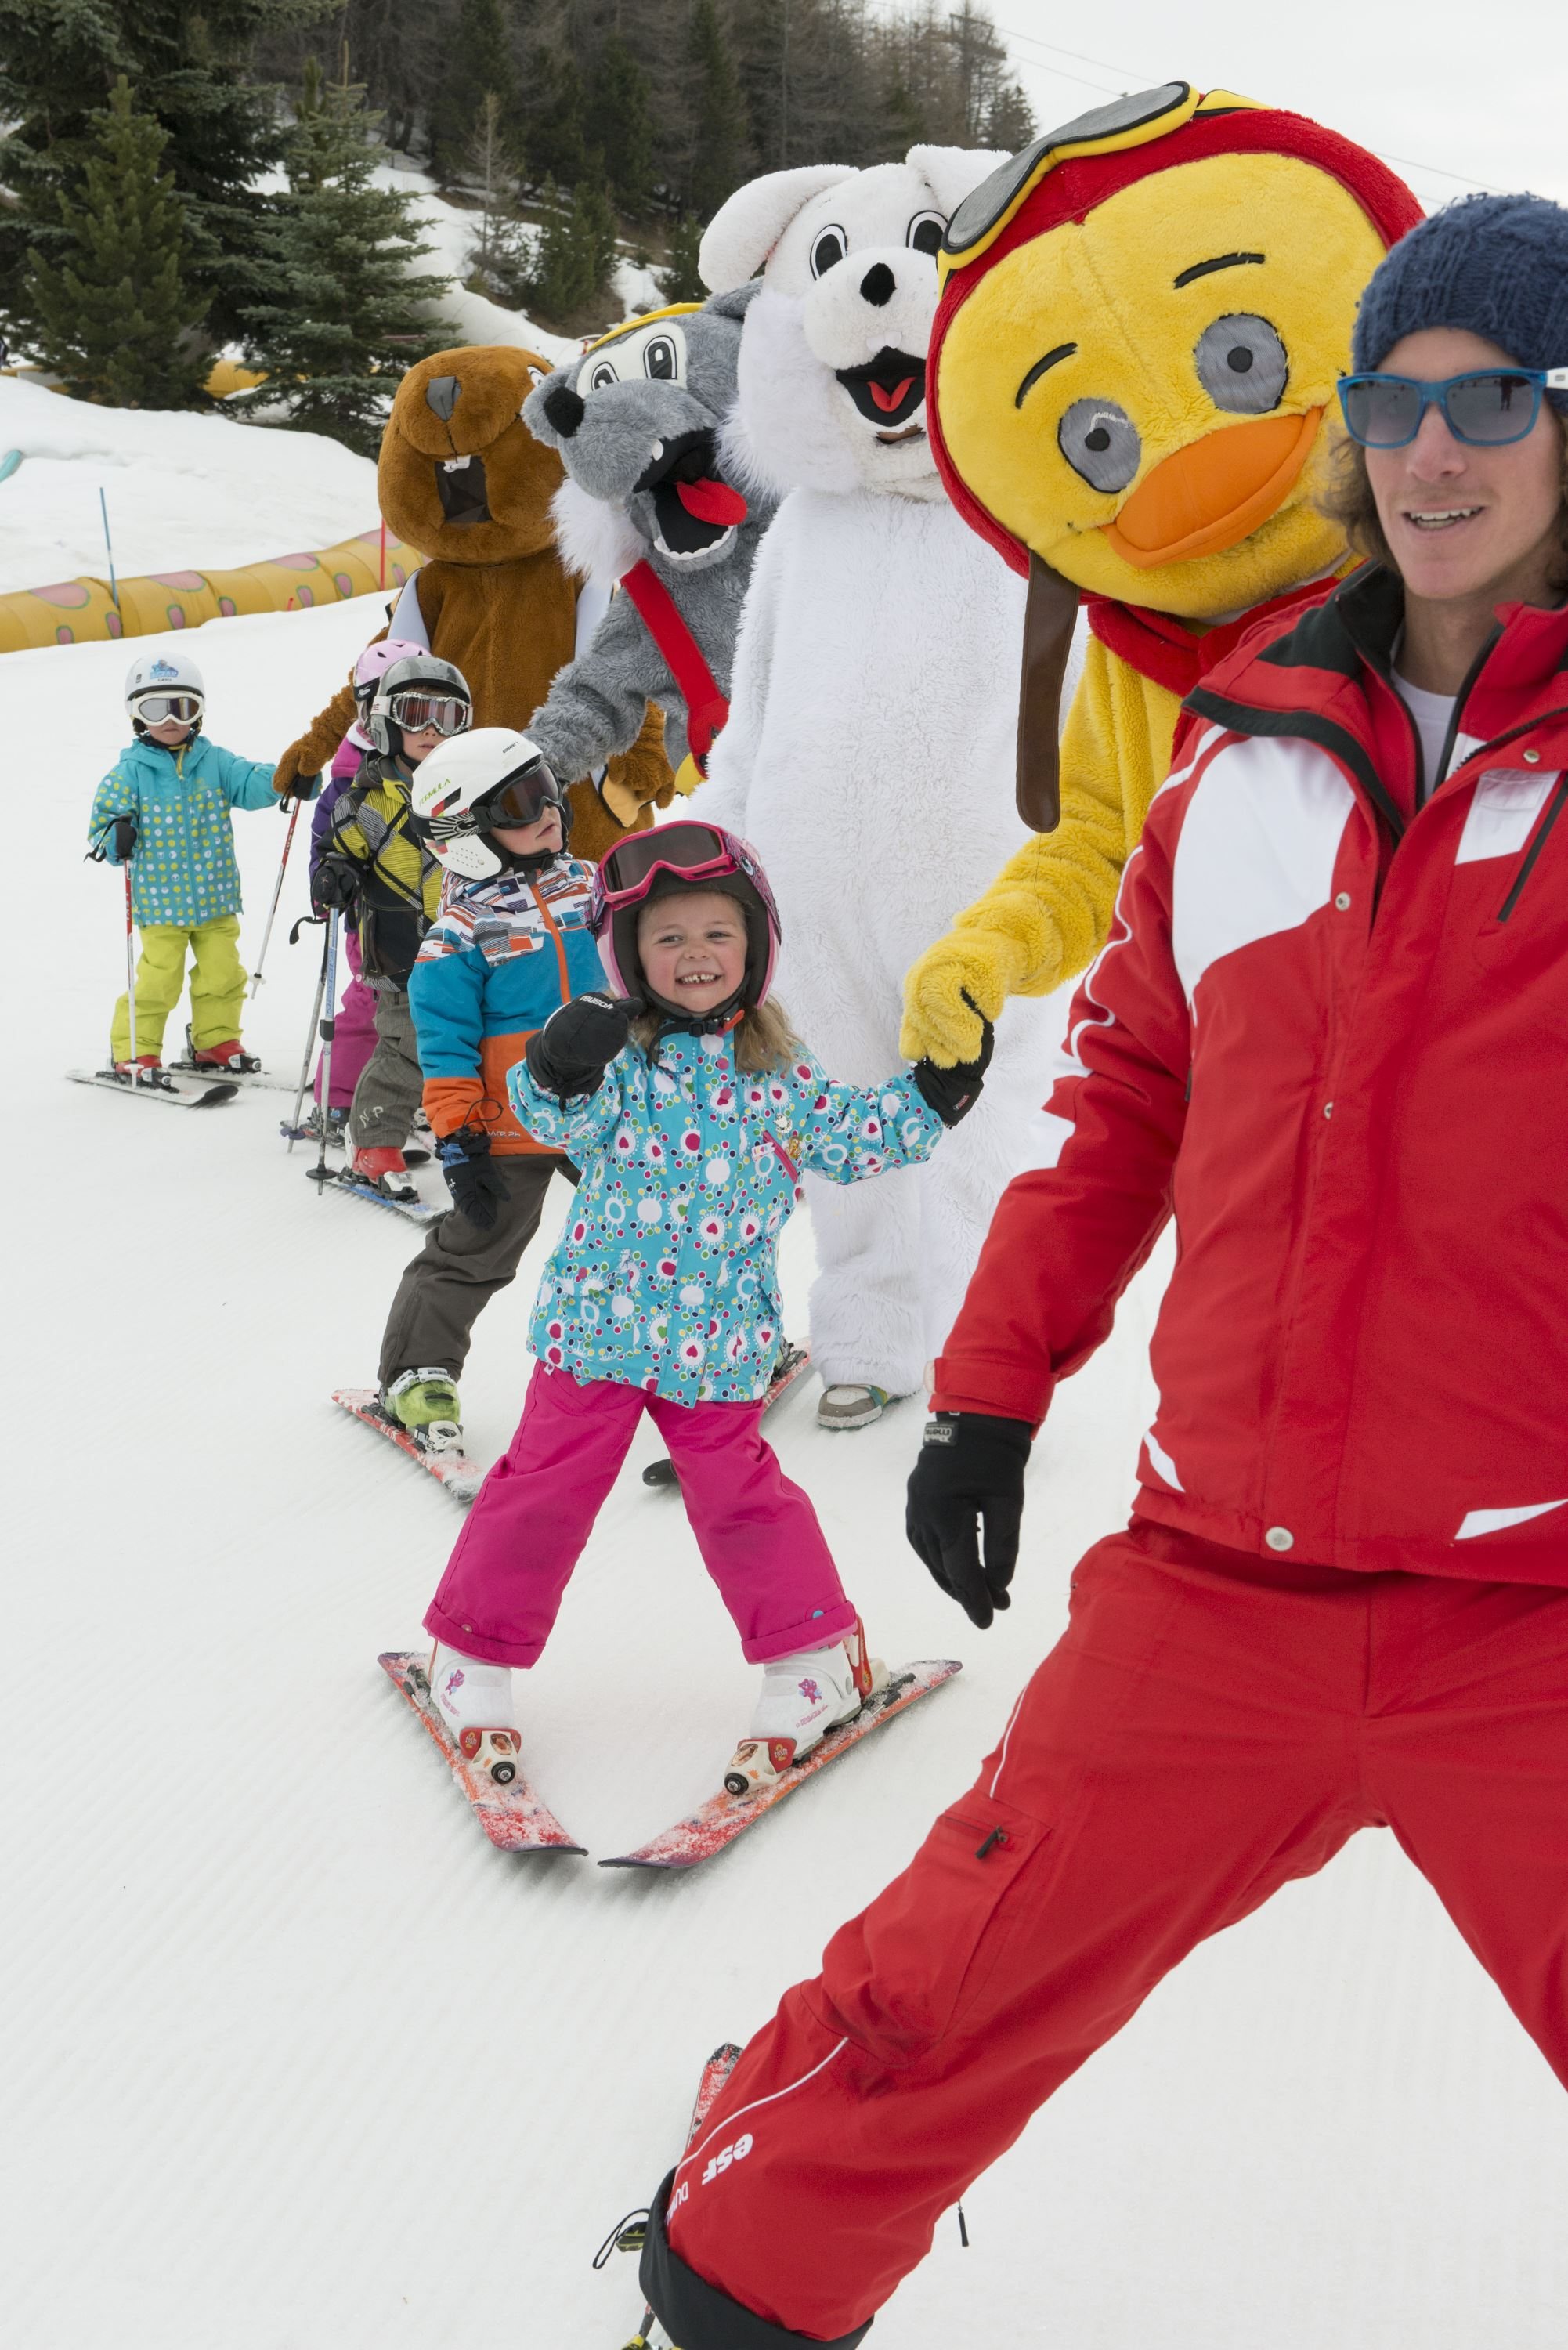 Group ski lessons 6 afternoons, Piou Piou Village, 4 to 5 years, beginner till snowflake level